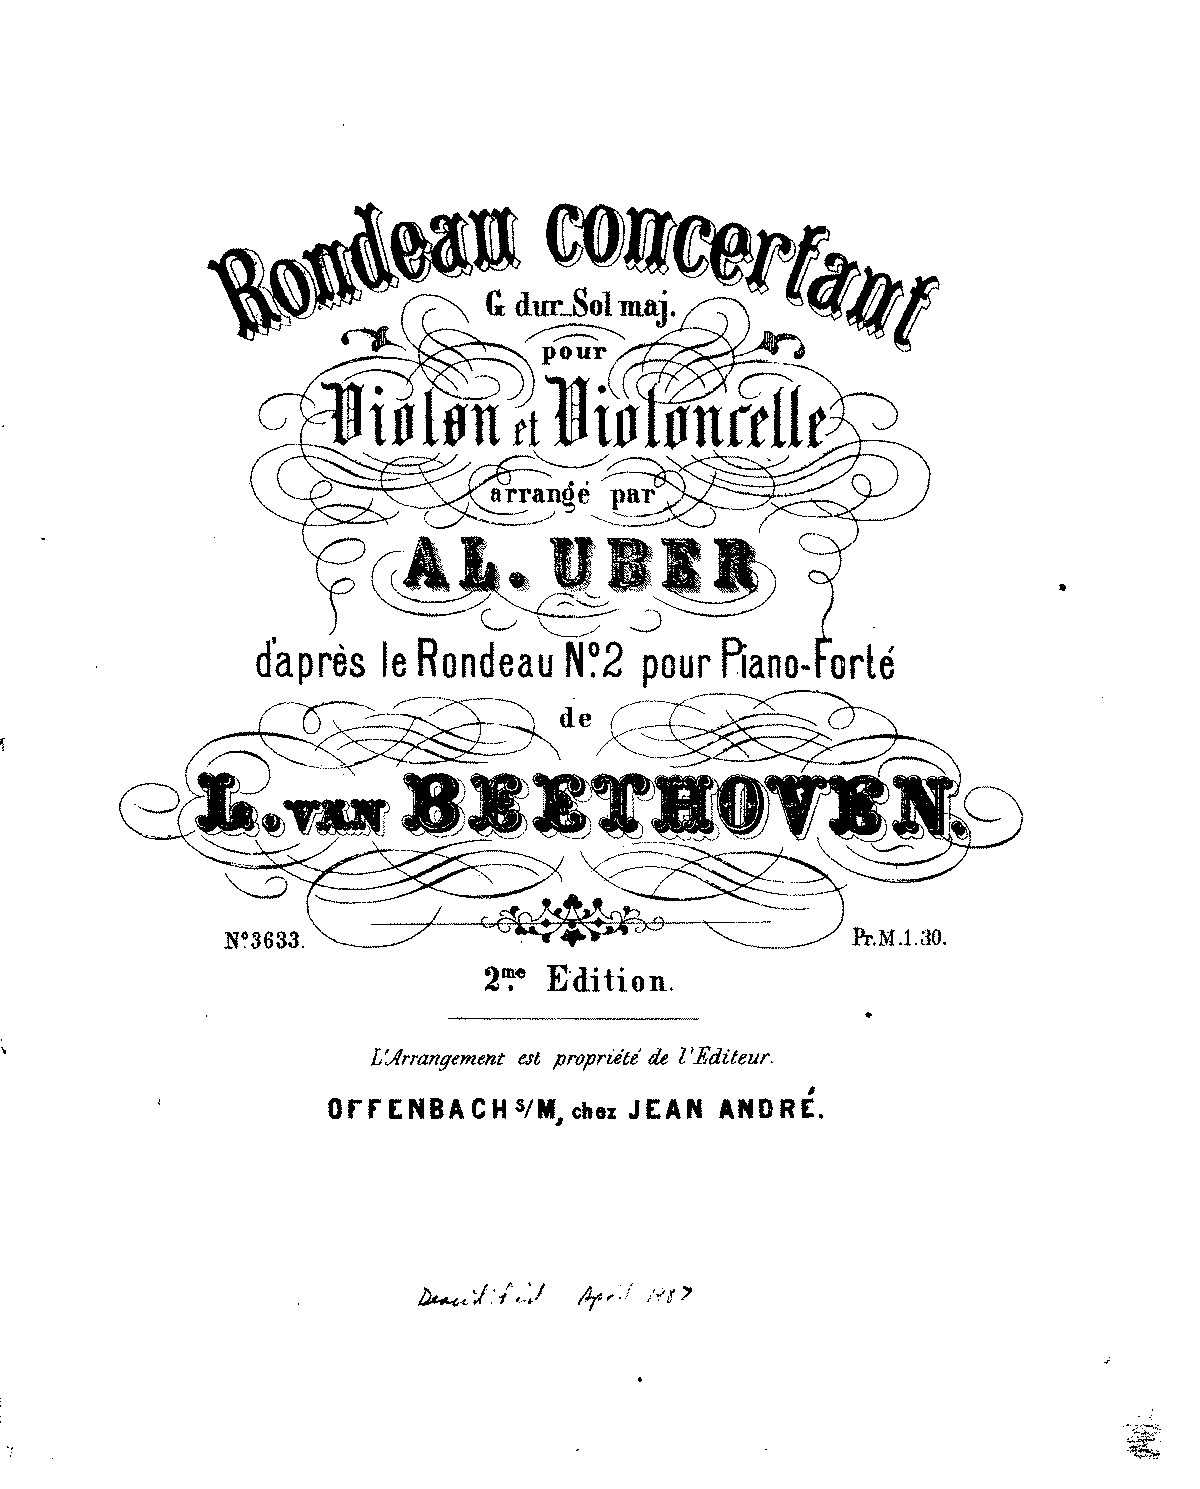 PMLP44645-Beethoven - Rondeau Concertant in G Major for Violin and Cello (Uber) Op51 No2 violin.pdf